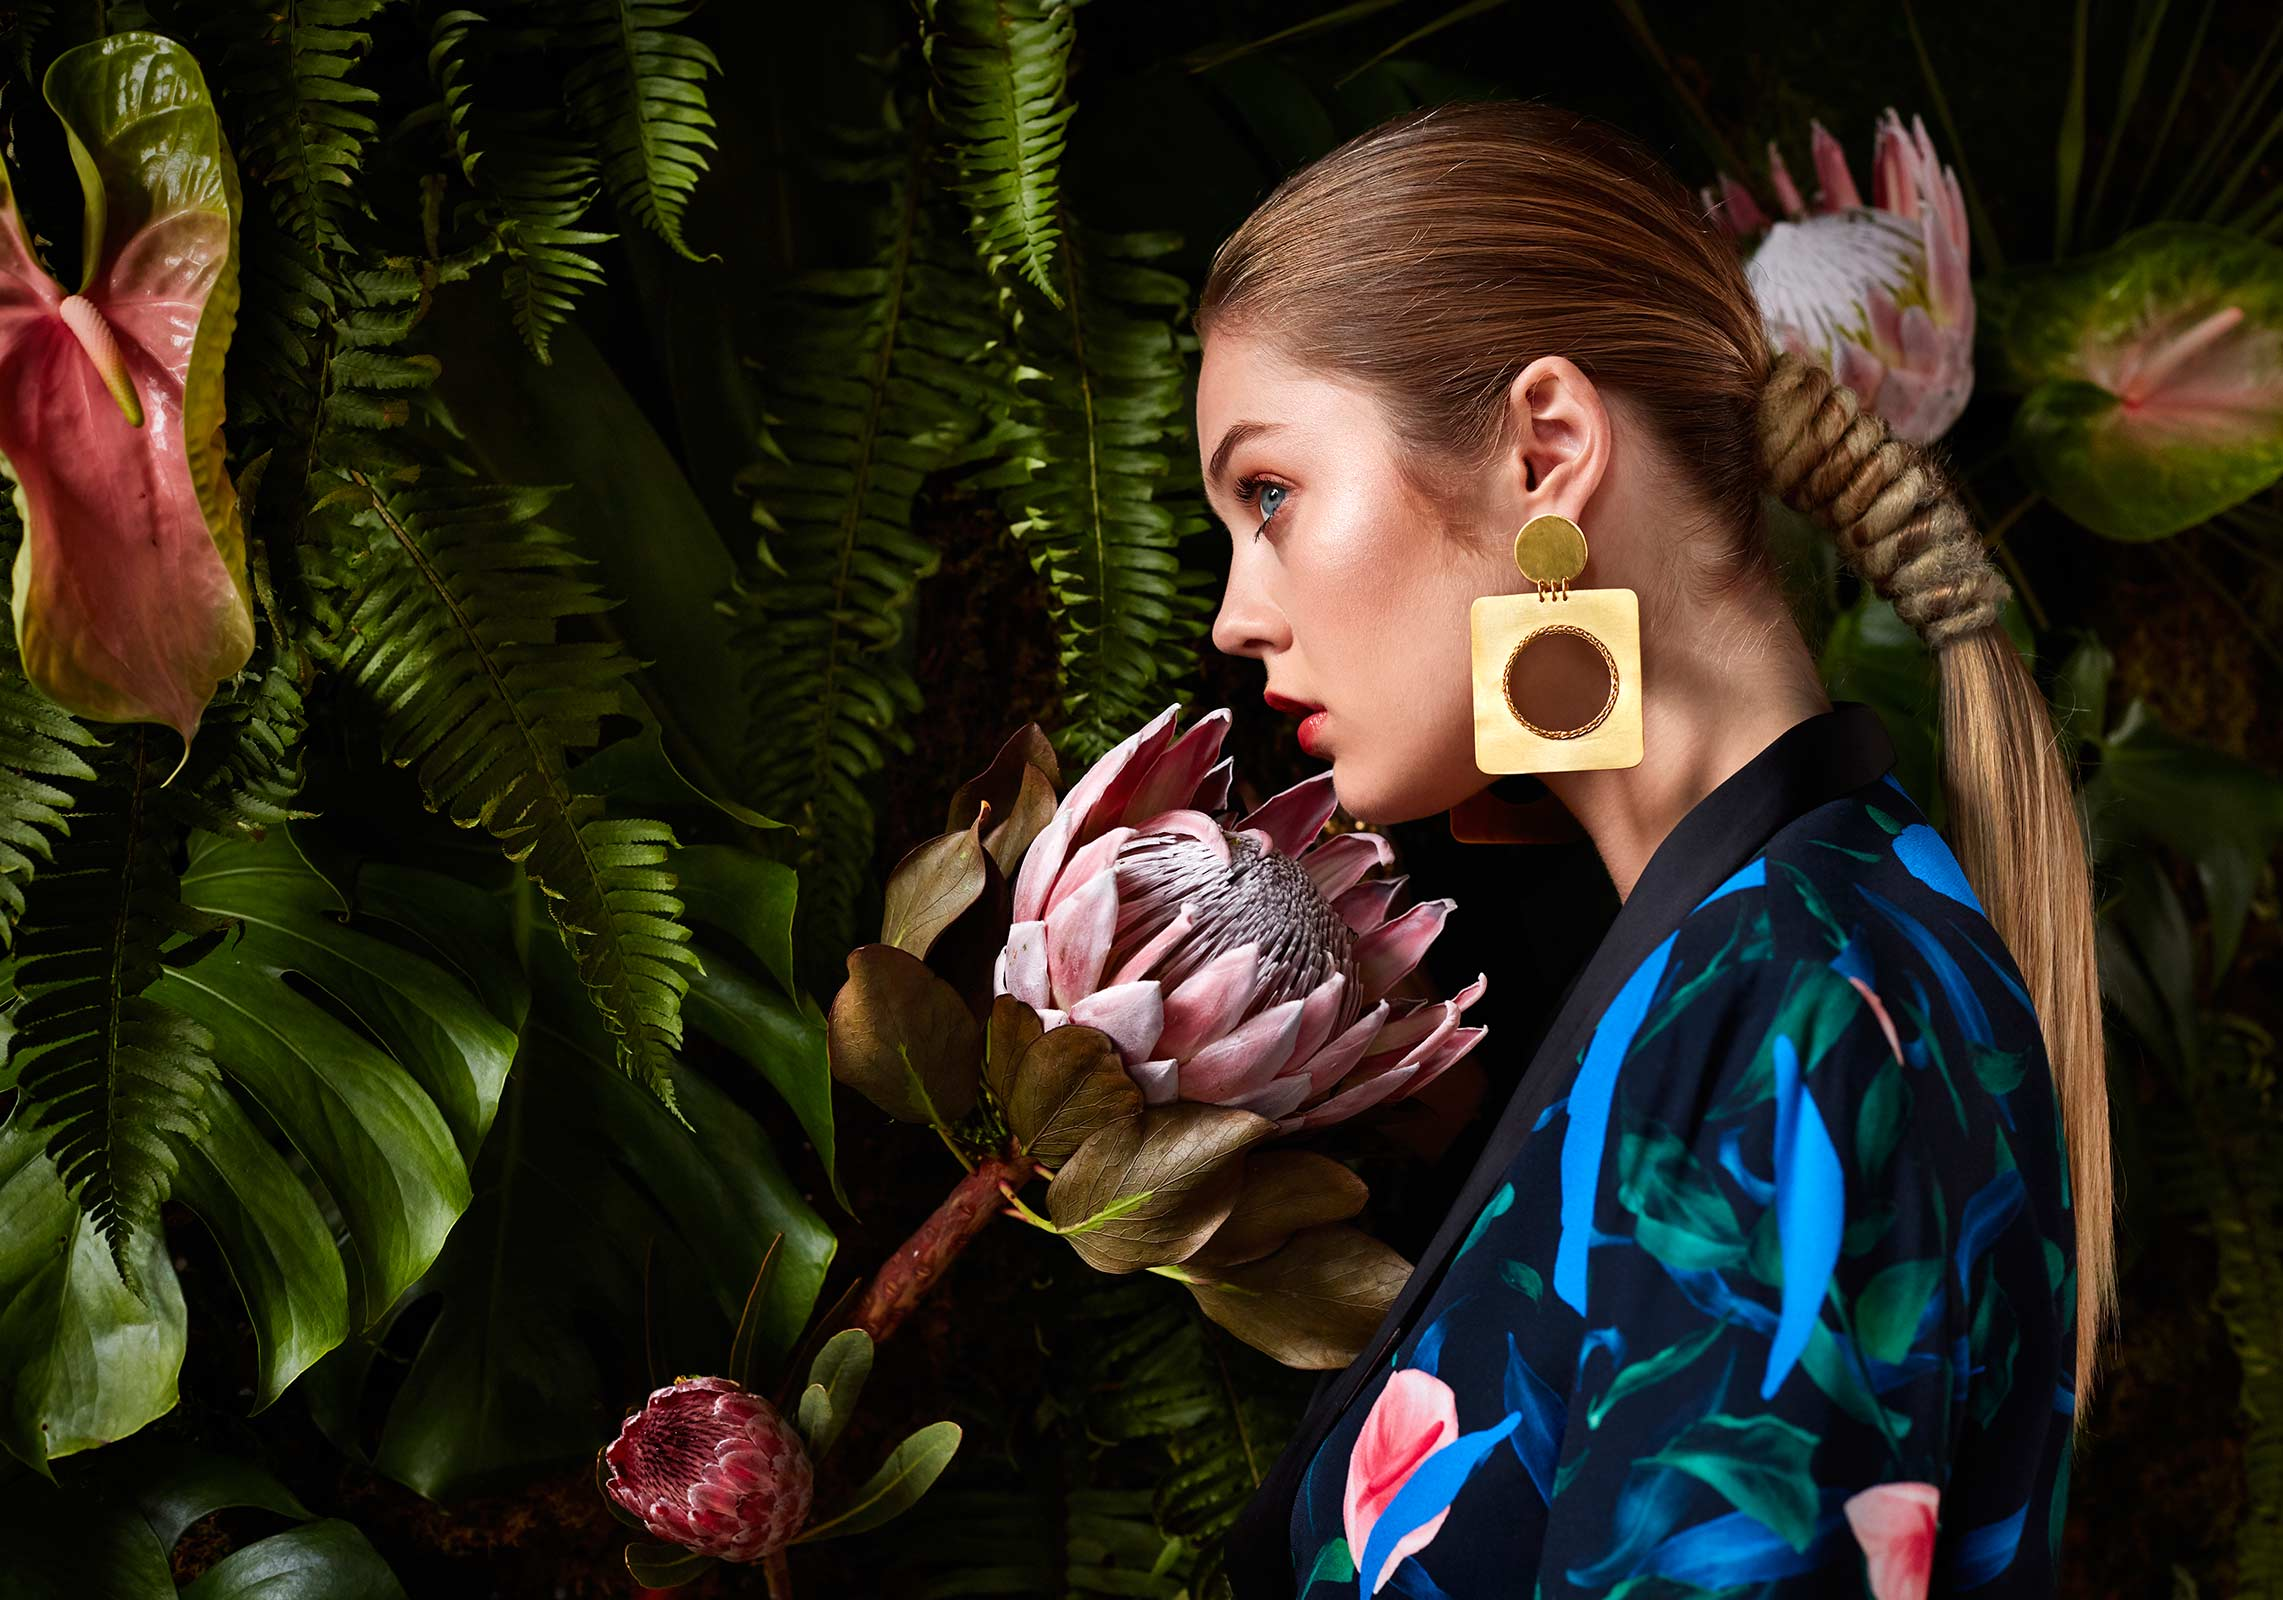 Colorful fashion photograph of model against a large flower wall.